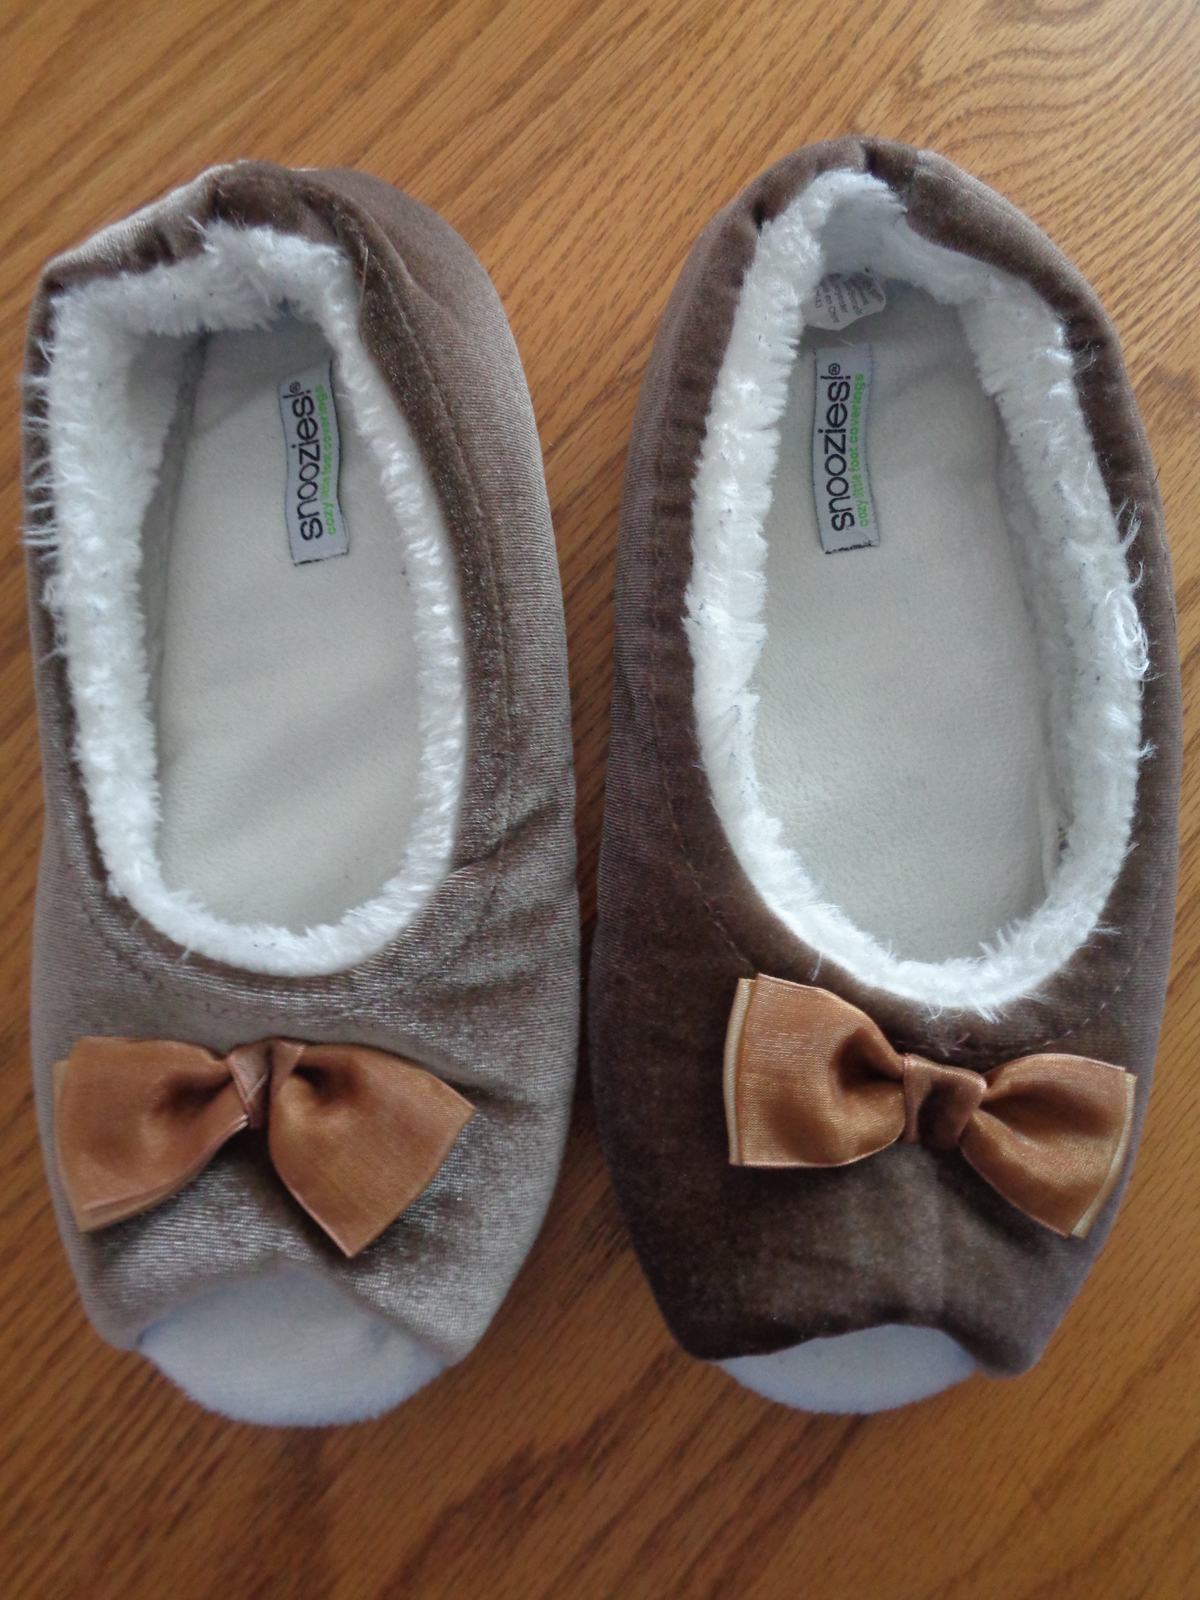 Snoozies Cosy Feet Coverings Peeptoe Style Brown Womens Slippers Size L 9 - $12.00